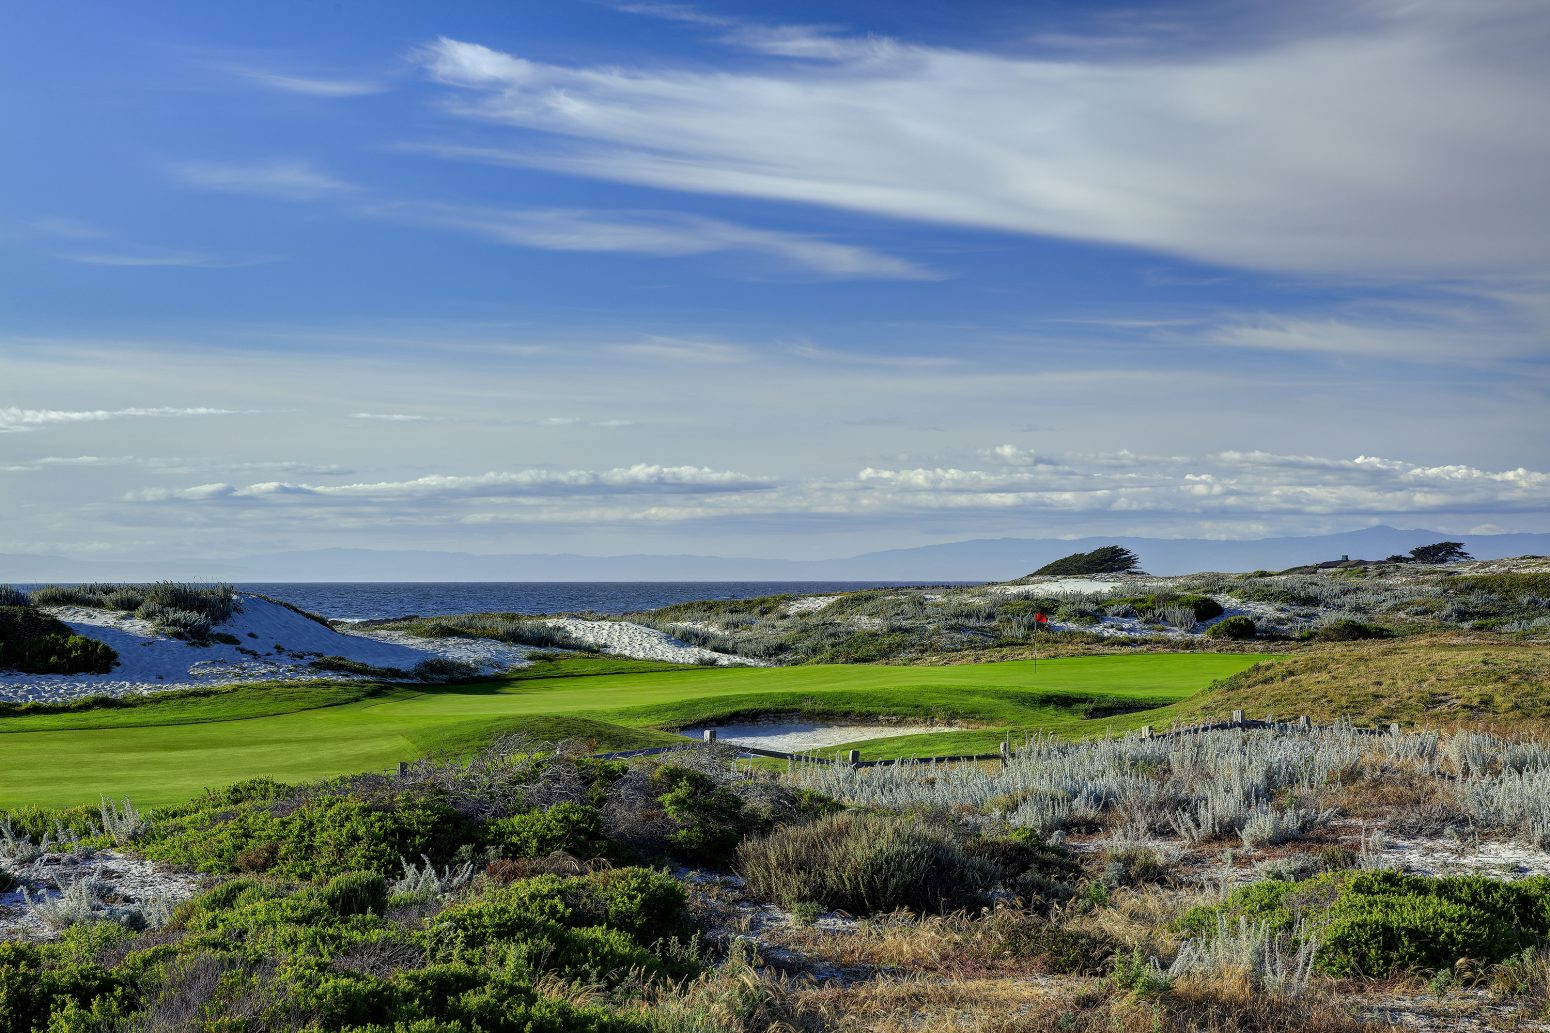 Overview of golf course named The Links at Spanish Bay